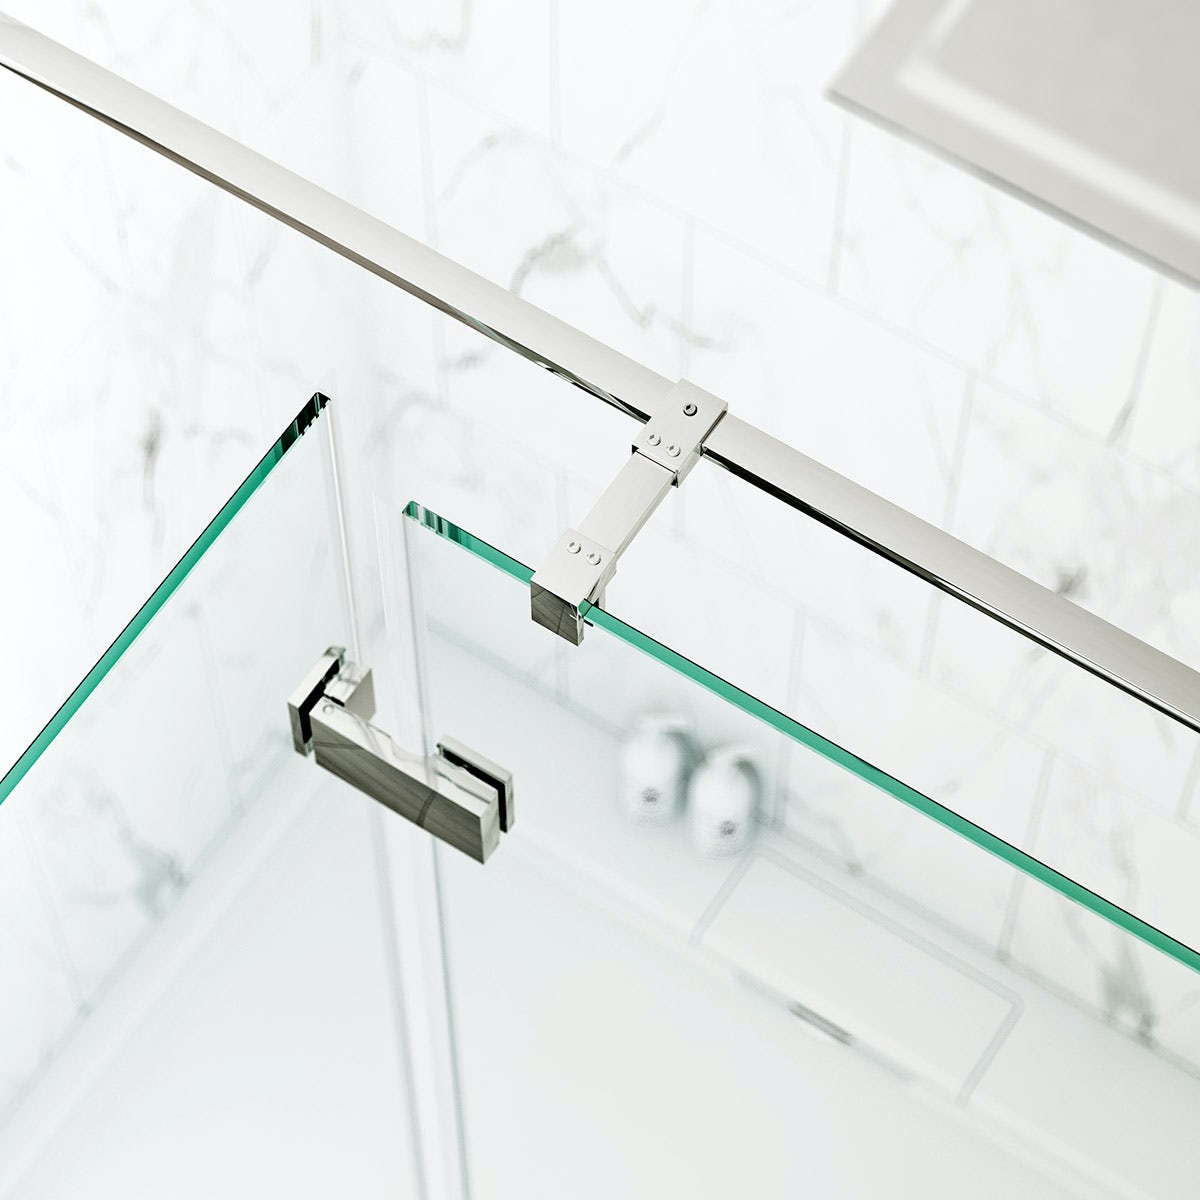 Cleaning Guide How To Clean Your Glass Shower Doors Properly: Mode Cooper Premium 8mm Easy Clean Shower Door